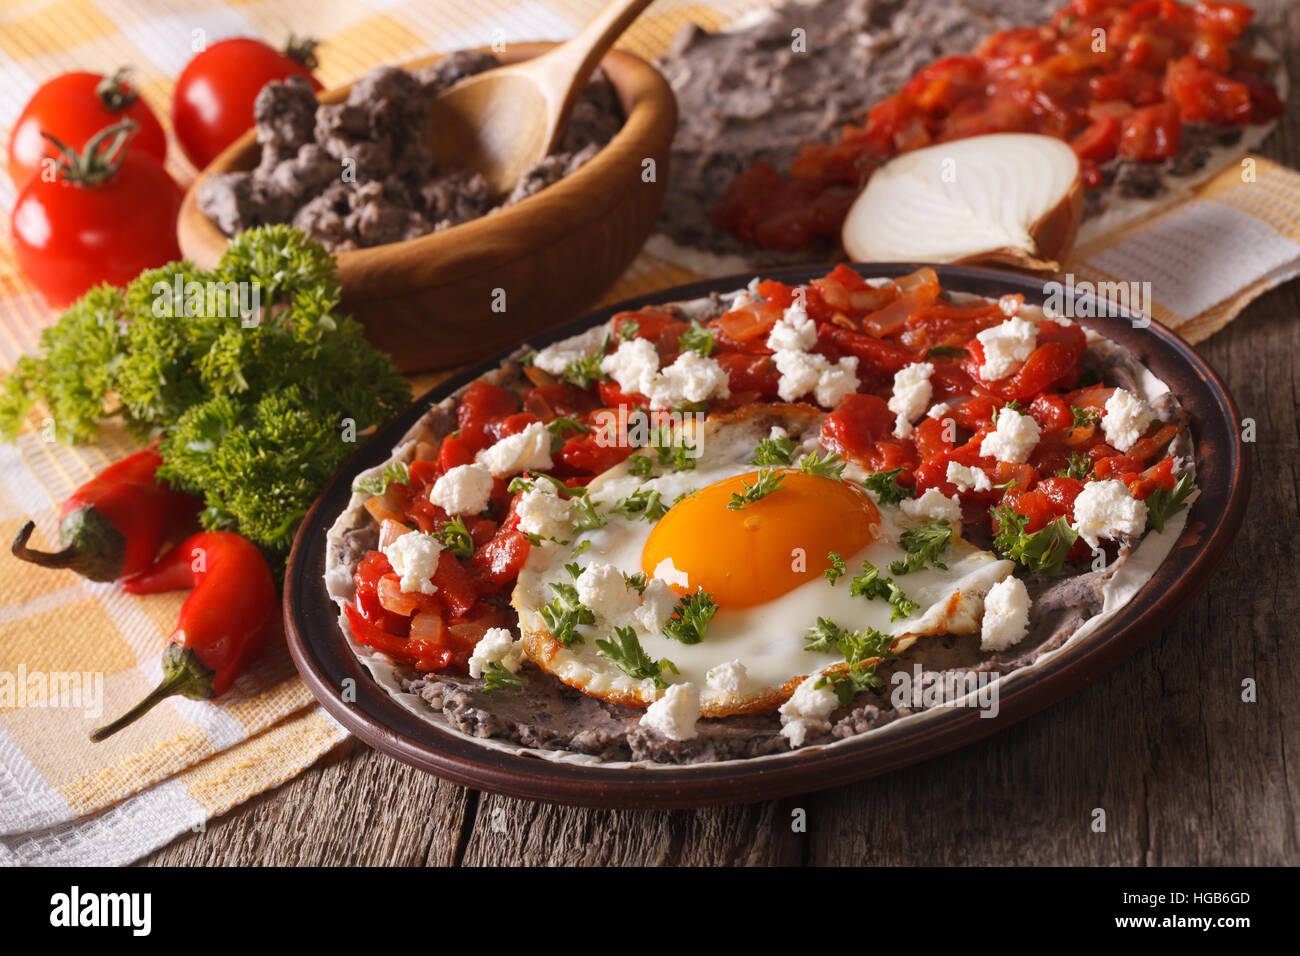 Mexican fried eggs huevos rancheros and ingredients close-up on the table. Horizontal - Stock Image